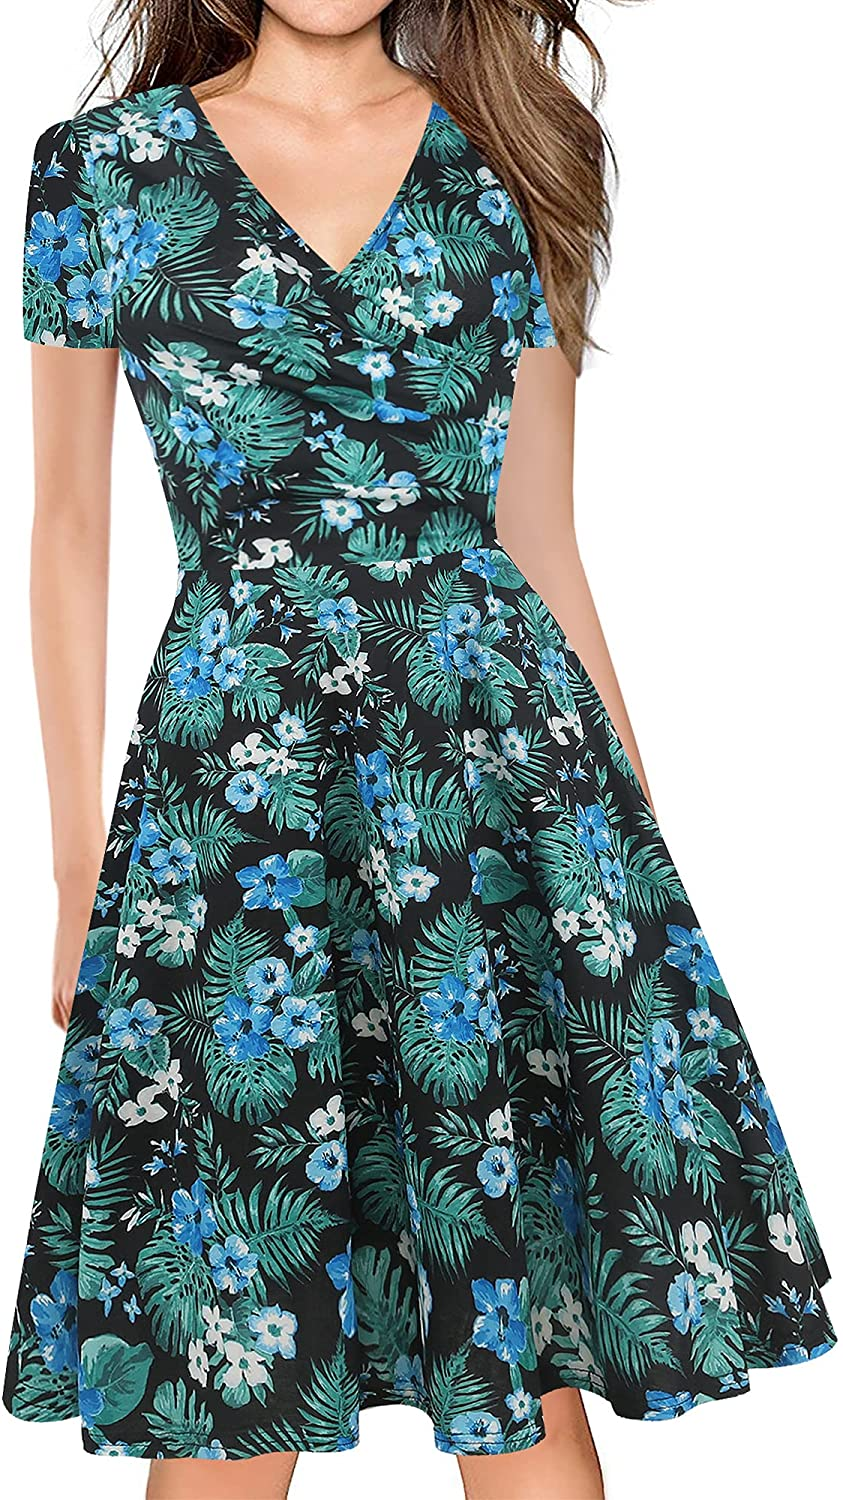 oxiuly Women's Chic Deep V-Neck Summer Casual Dress A-Line Graduation Gown Party Tea Dresses with Pockets OX288